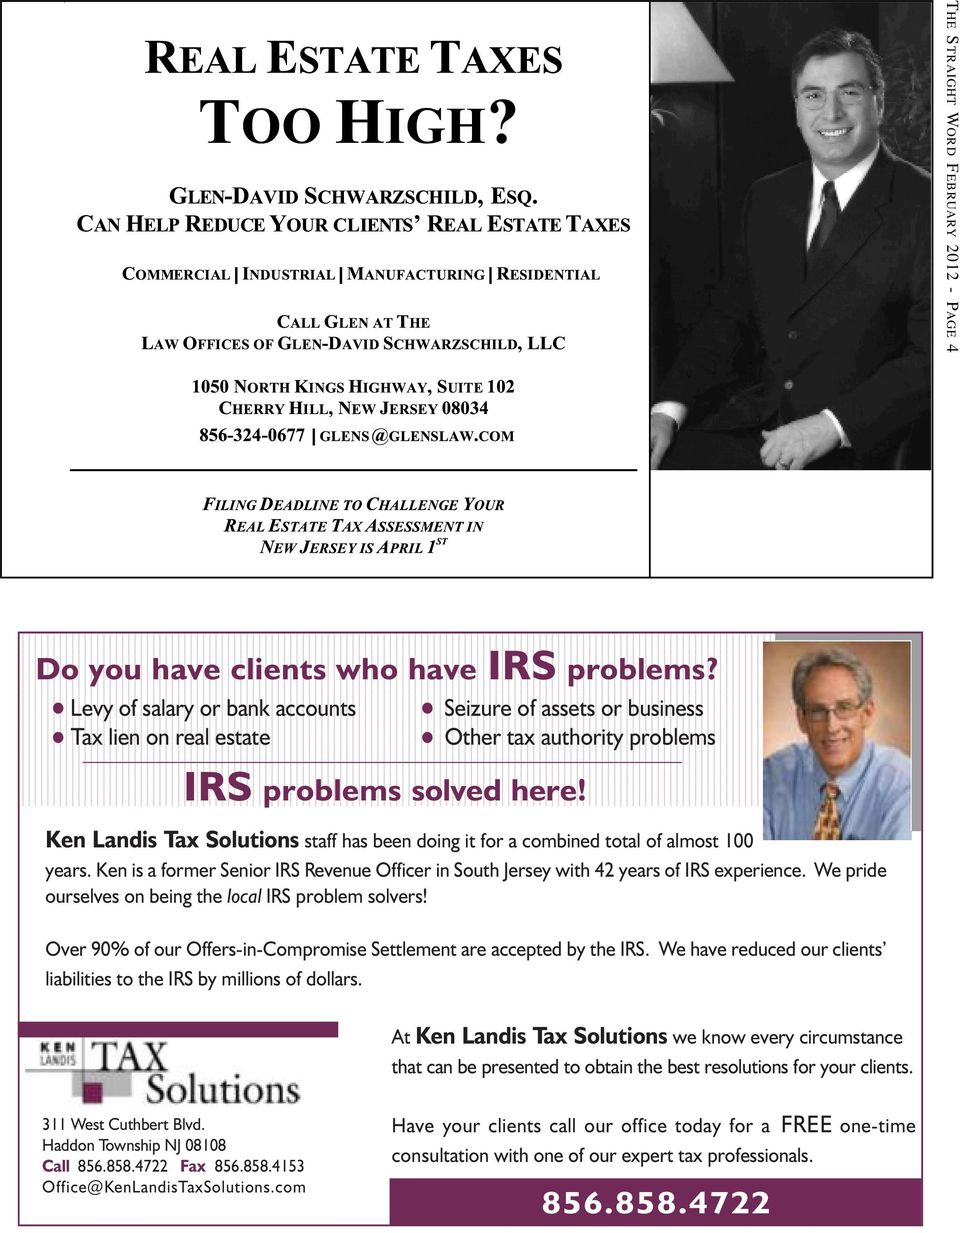 Ken Landis Tax Solutions staff has been doing it for a combined total of almost 100 years. Ken is a former Senior IRS Revenue Officer in South Jersey with 42 years of IRS experience.